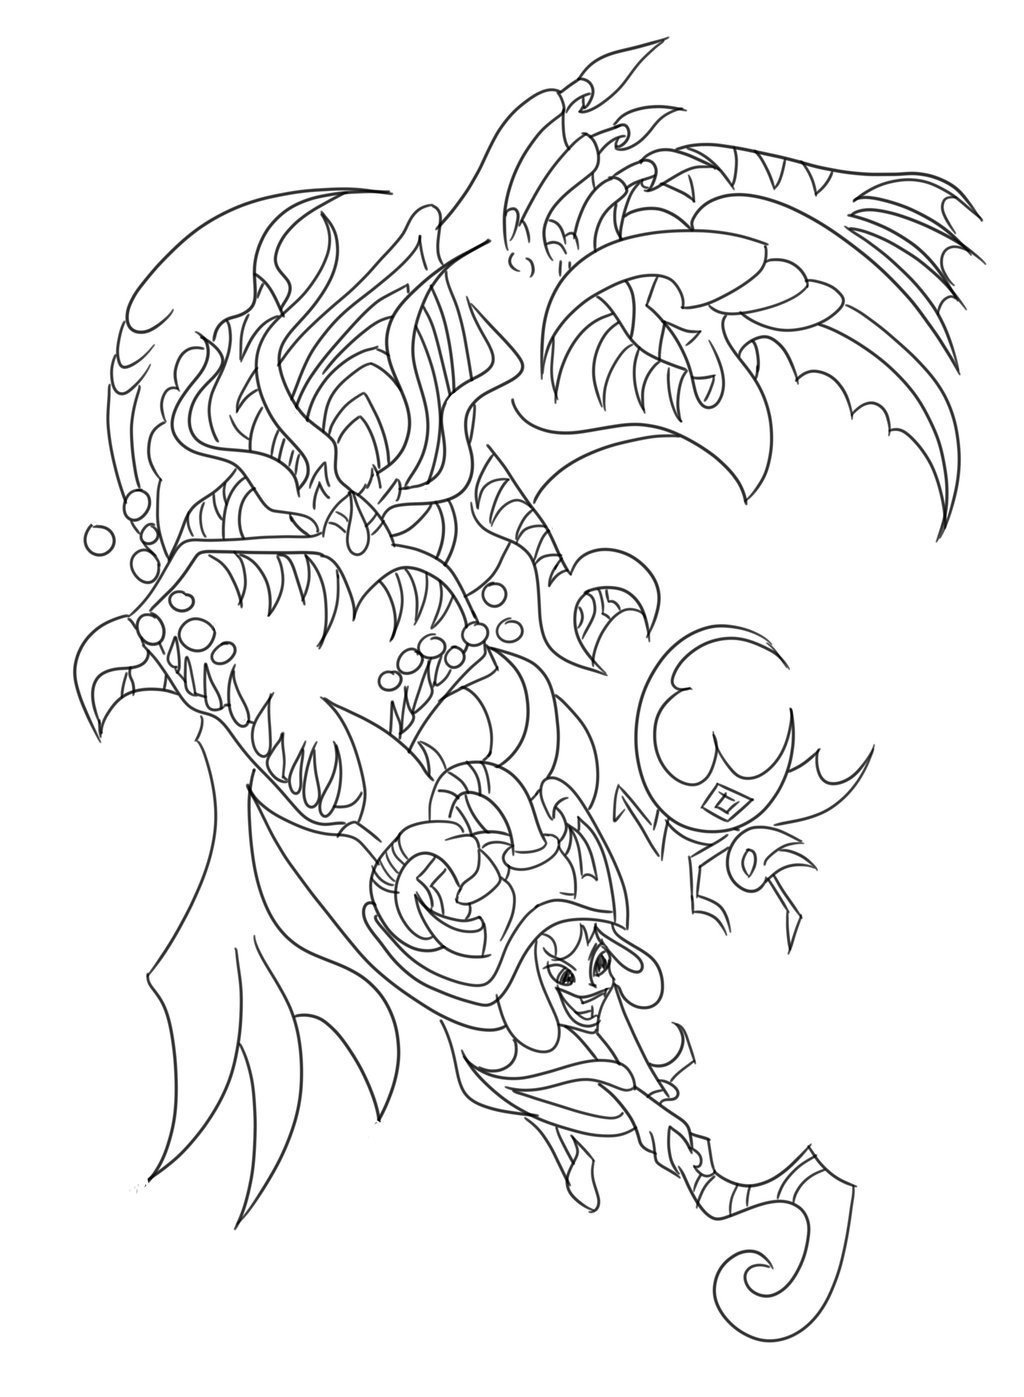 league of legends rumble coloring pages | League Of Legends coloring, Download League Of Legends ...